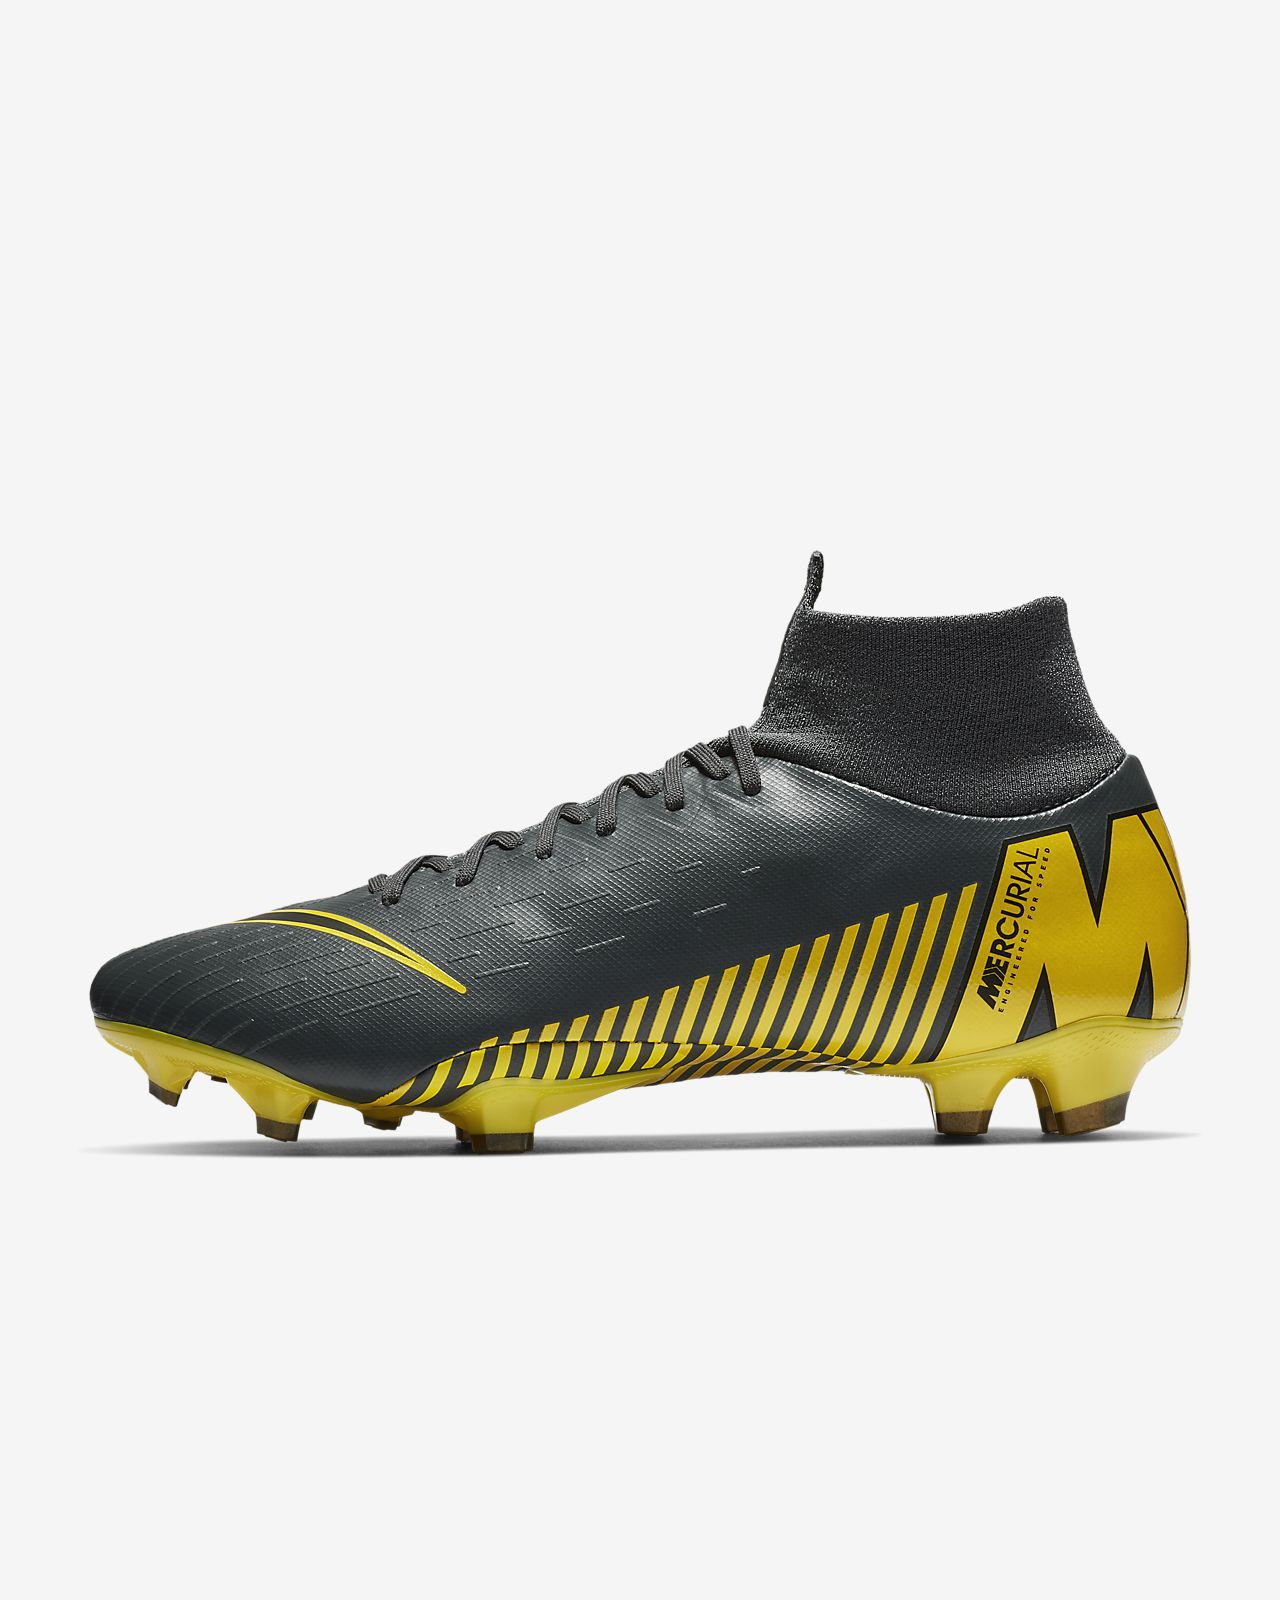 16742c39b Nike Superfly 6 Pro FG Firm-Ground Football Boot. Nike.com FI